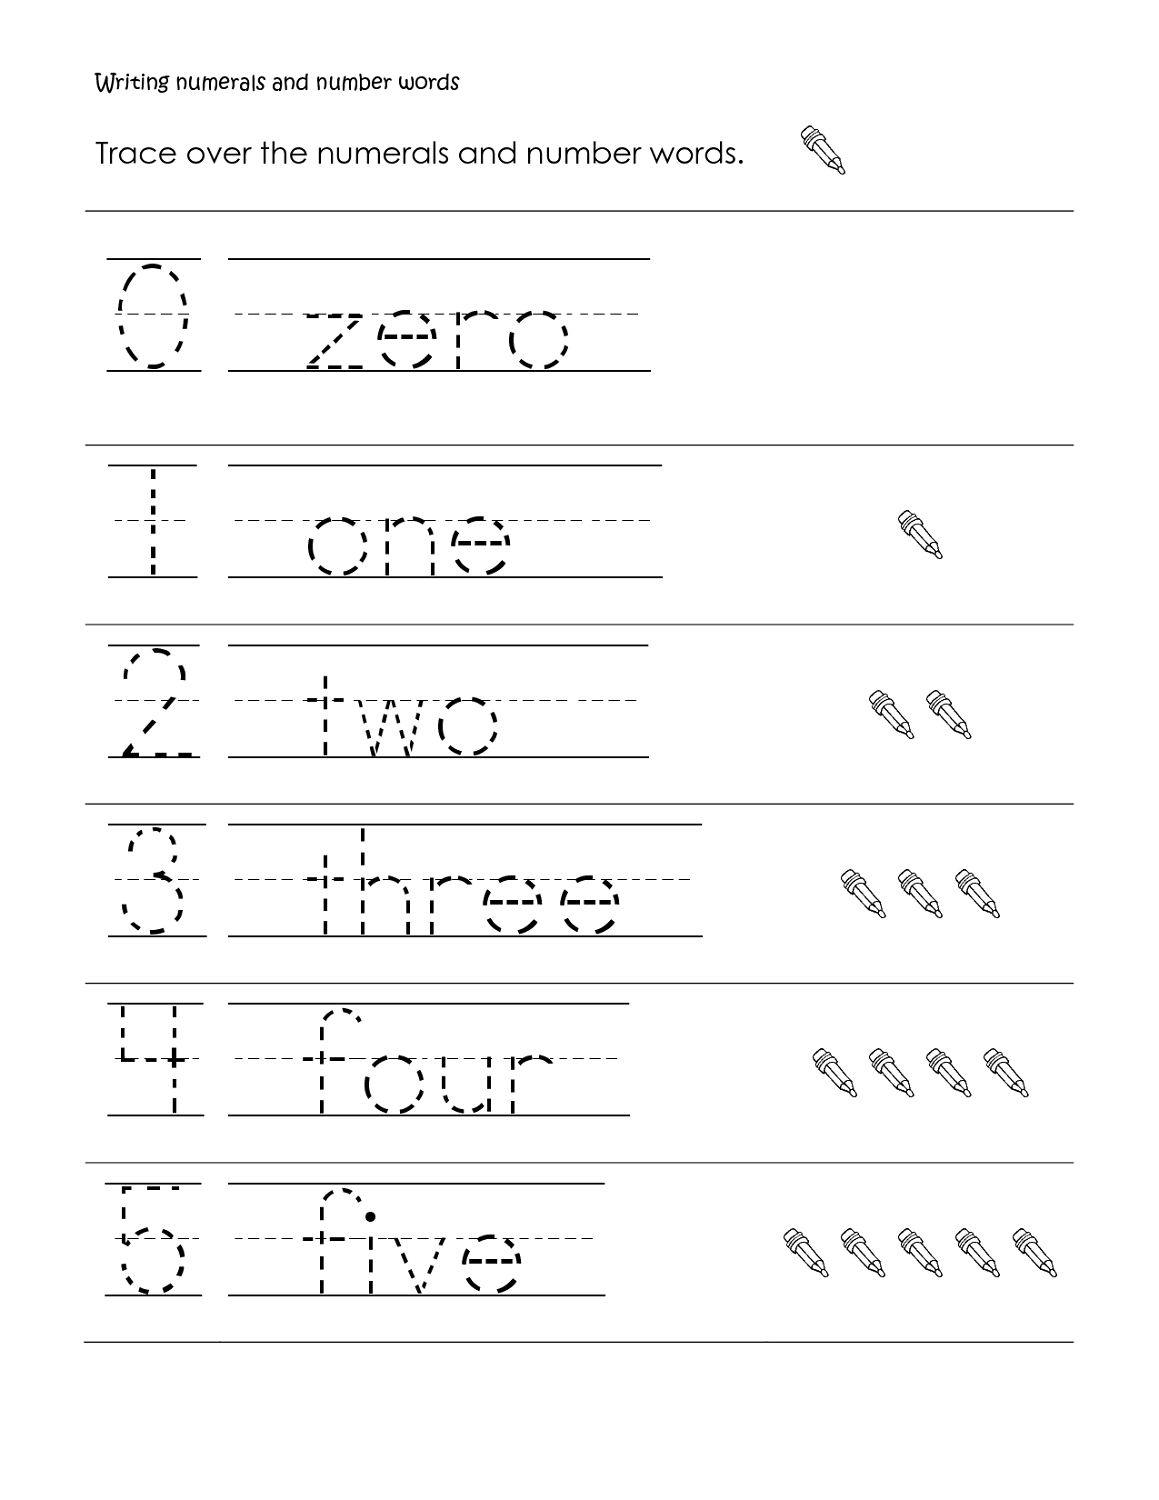 English Number Word Worksheet